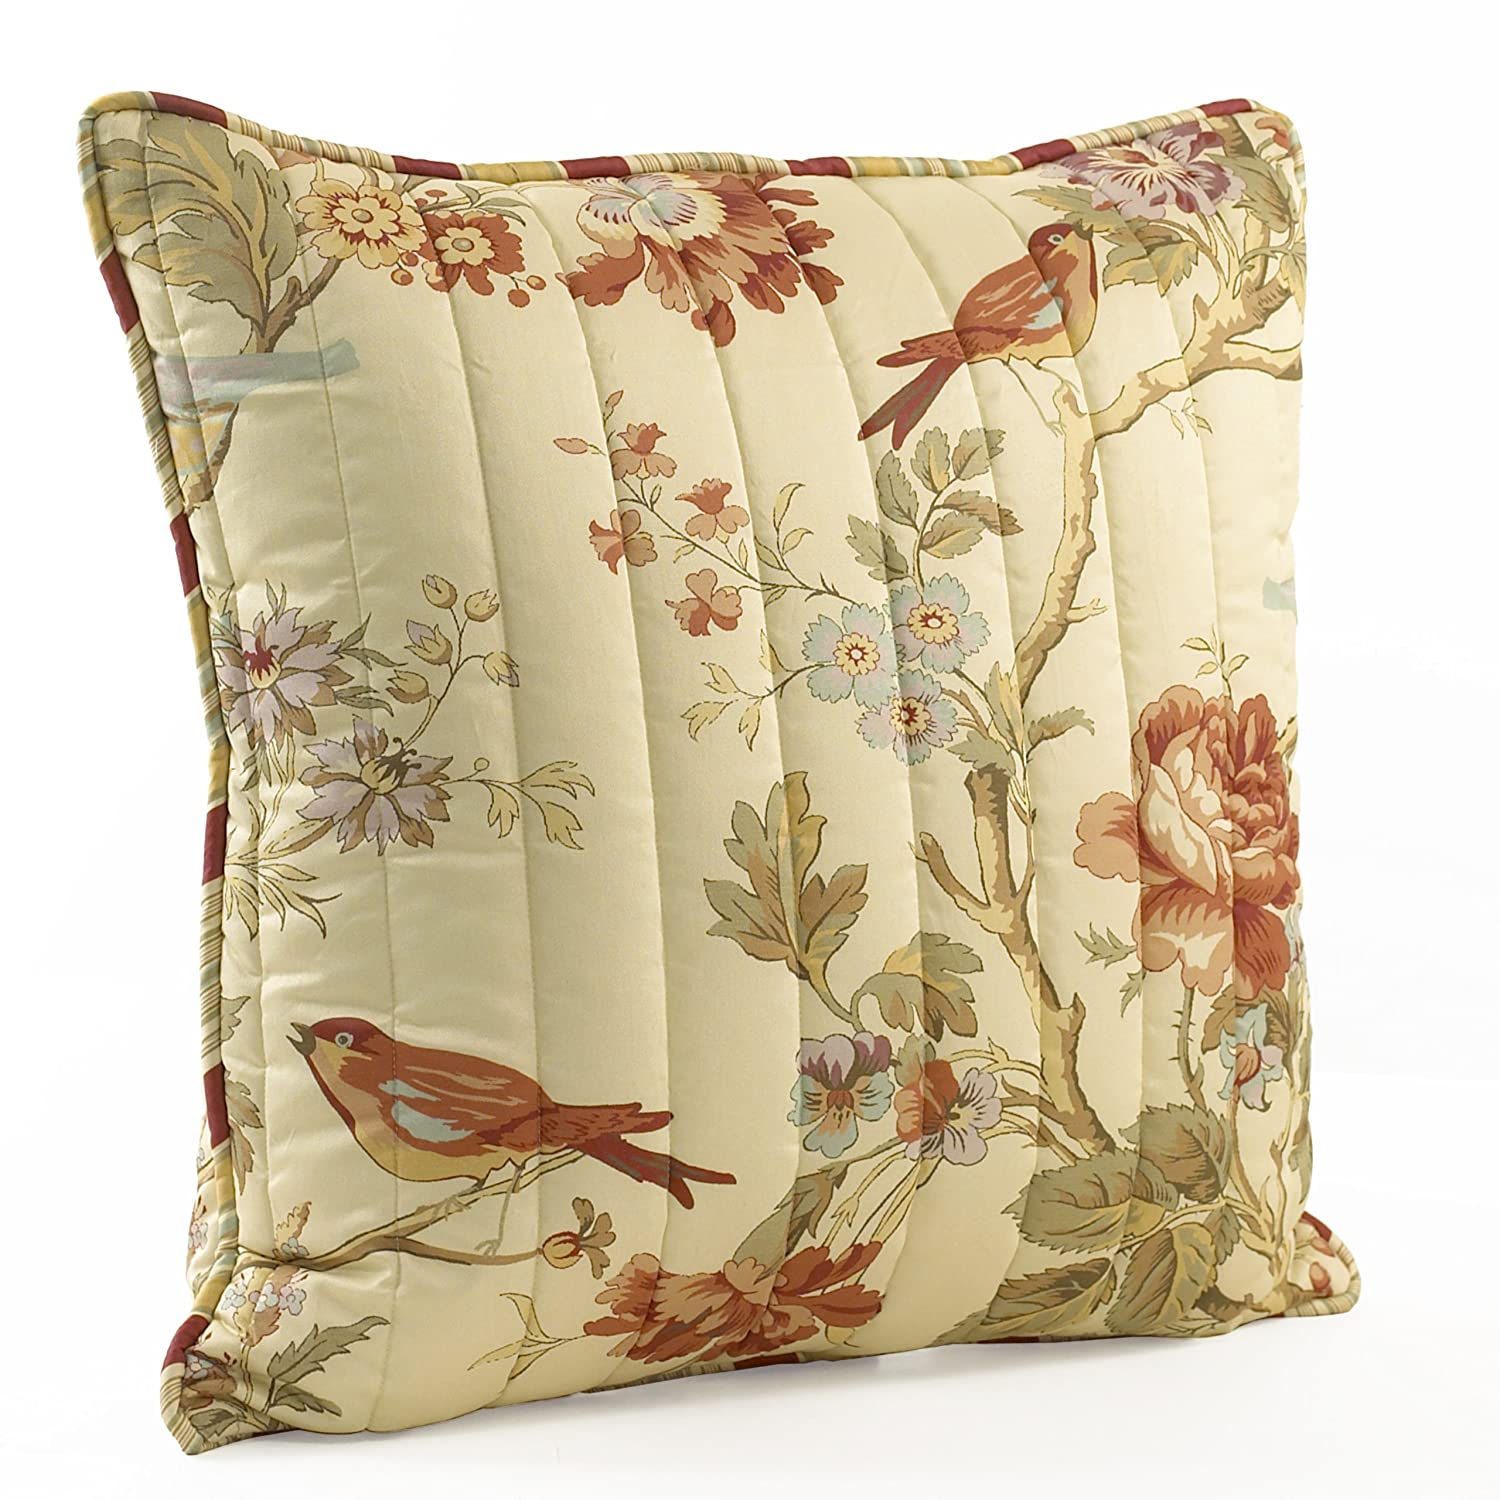 Waverly 11396020X020PPY Charleston Chirp 20-Inch by 20-Inch Square Quilted Decorative Pillow